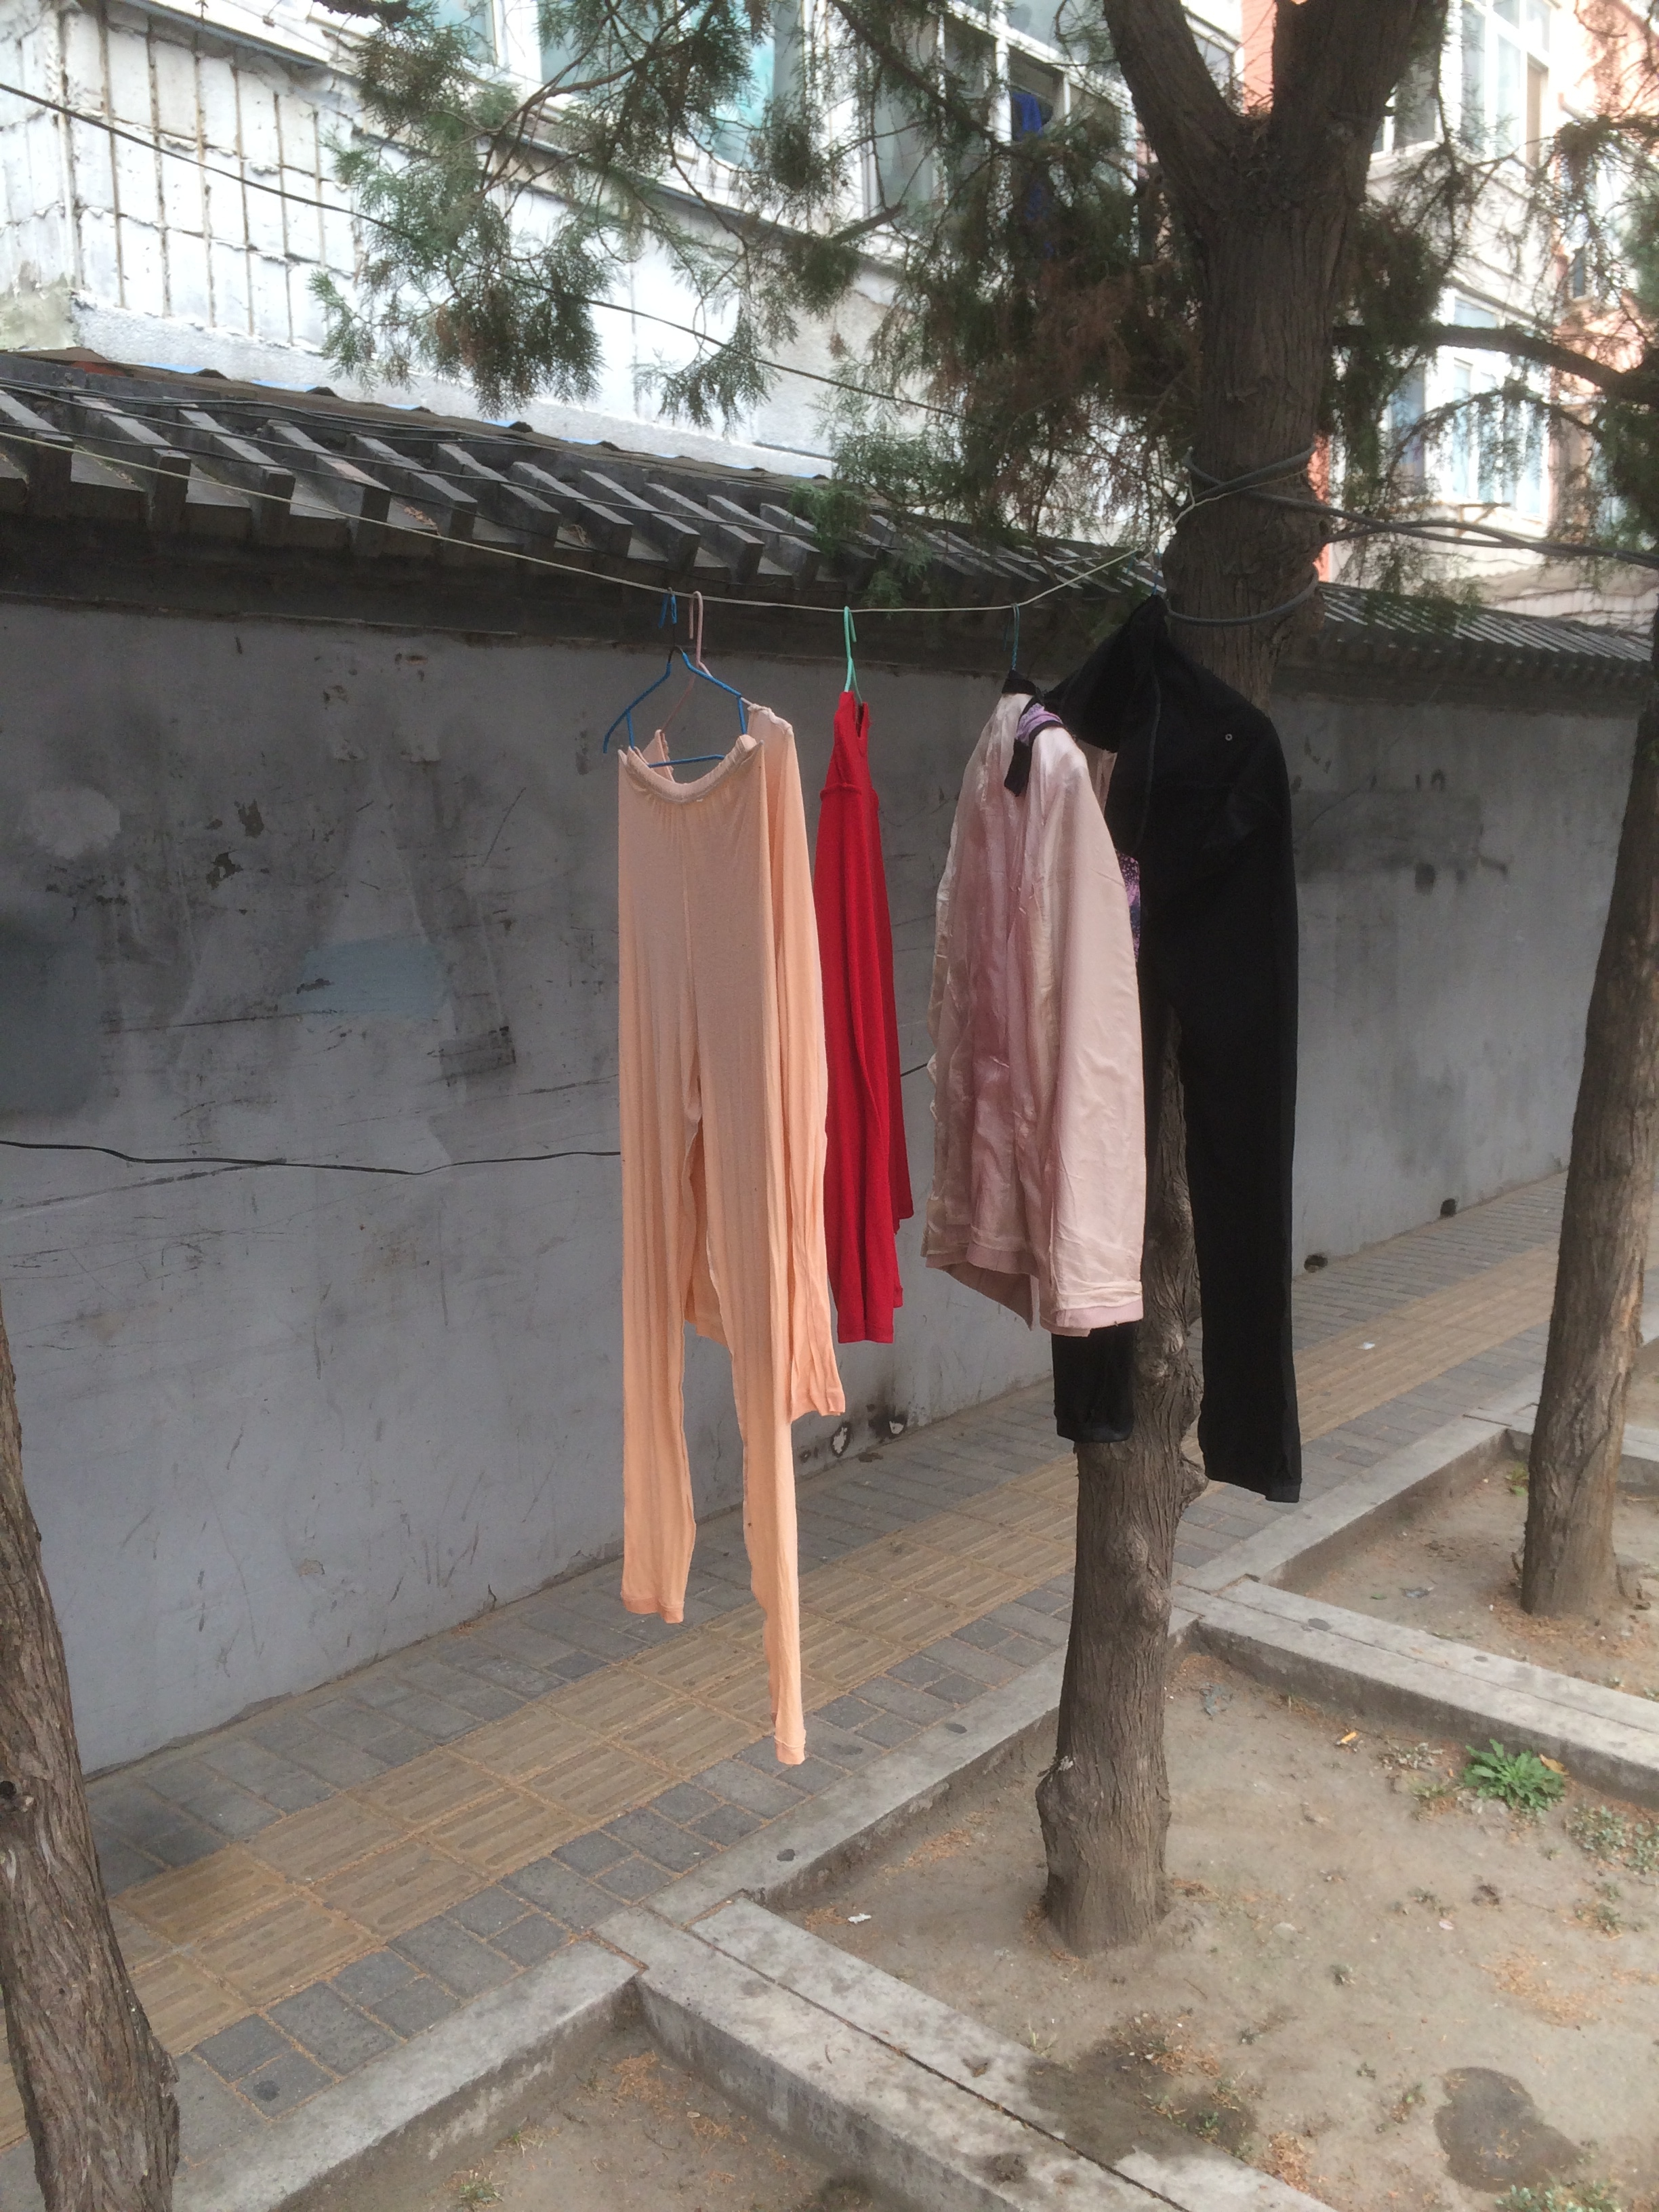 many people don't have dryers in their apartments...so I guess they just dry their clothes on the street?!